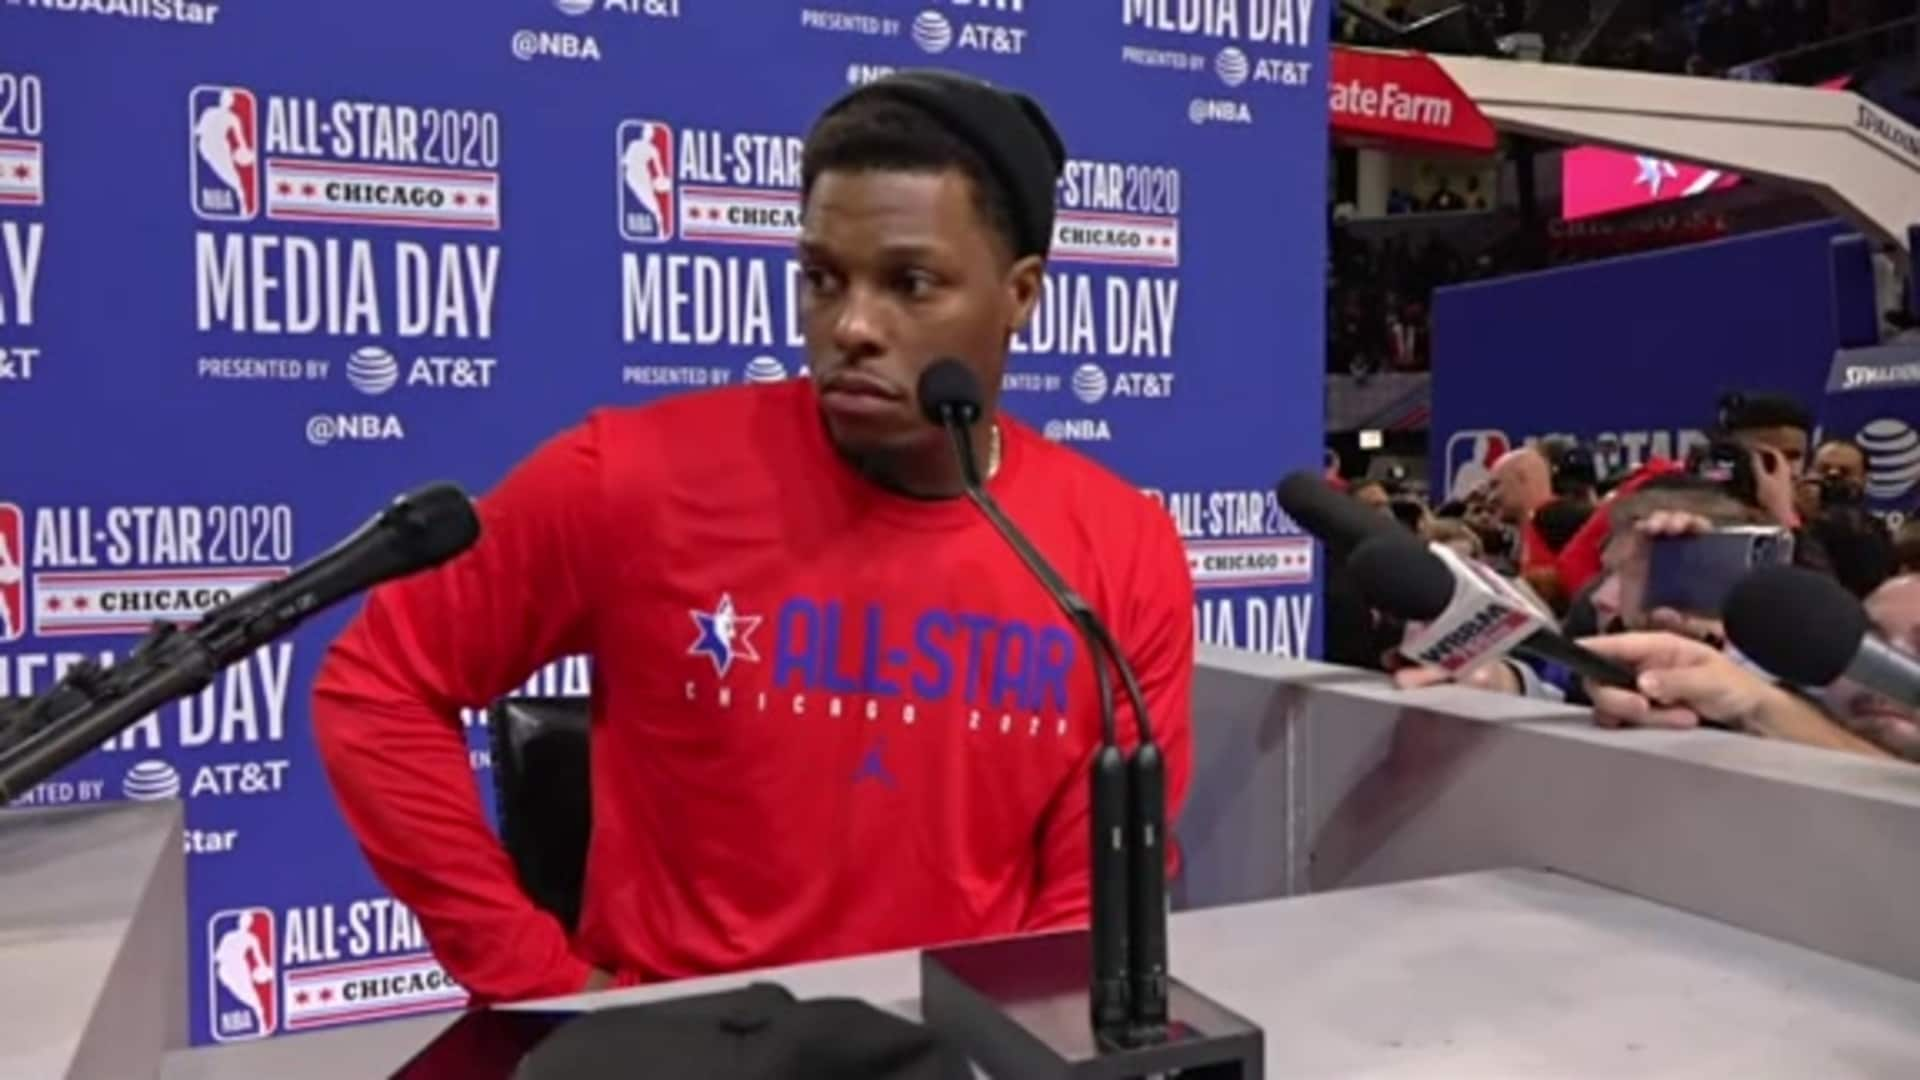 All Star: Kyle Lowry - February 15, 2020